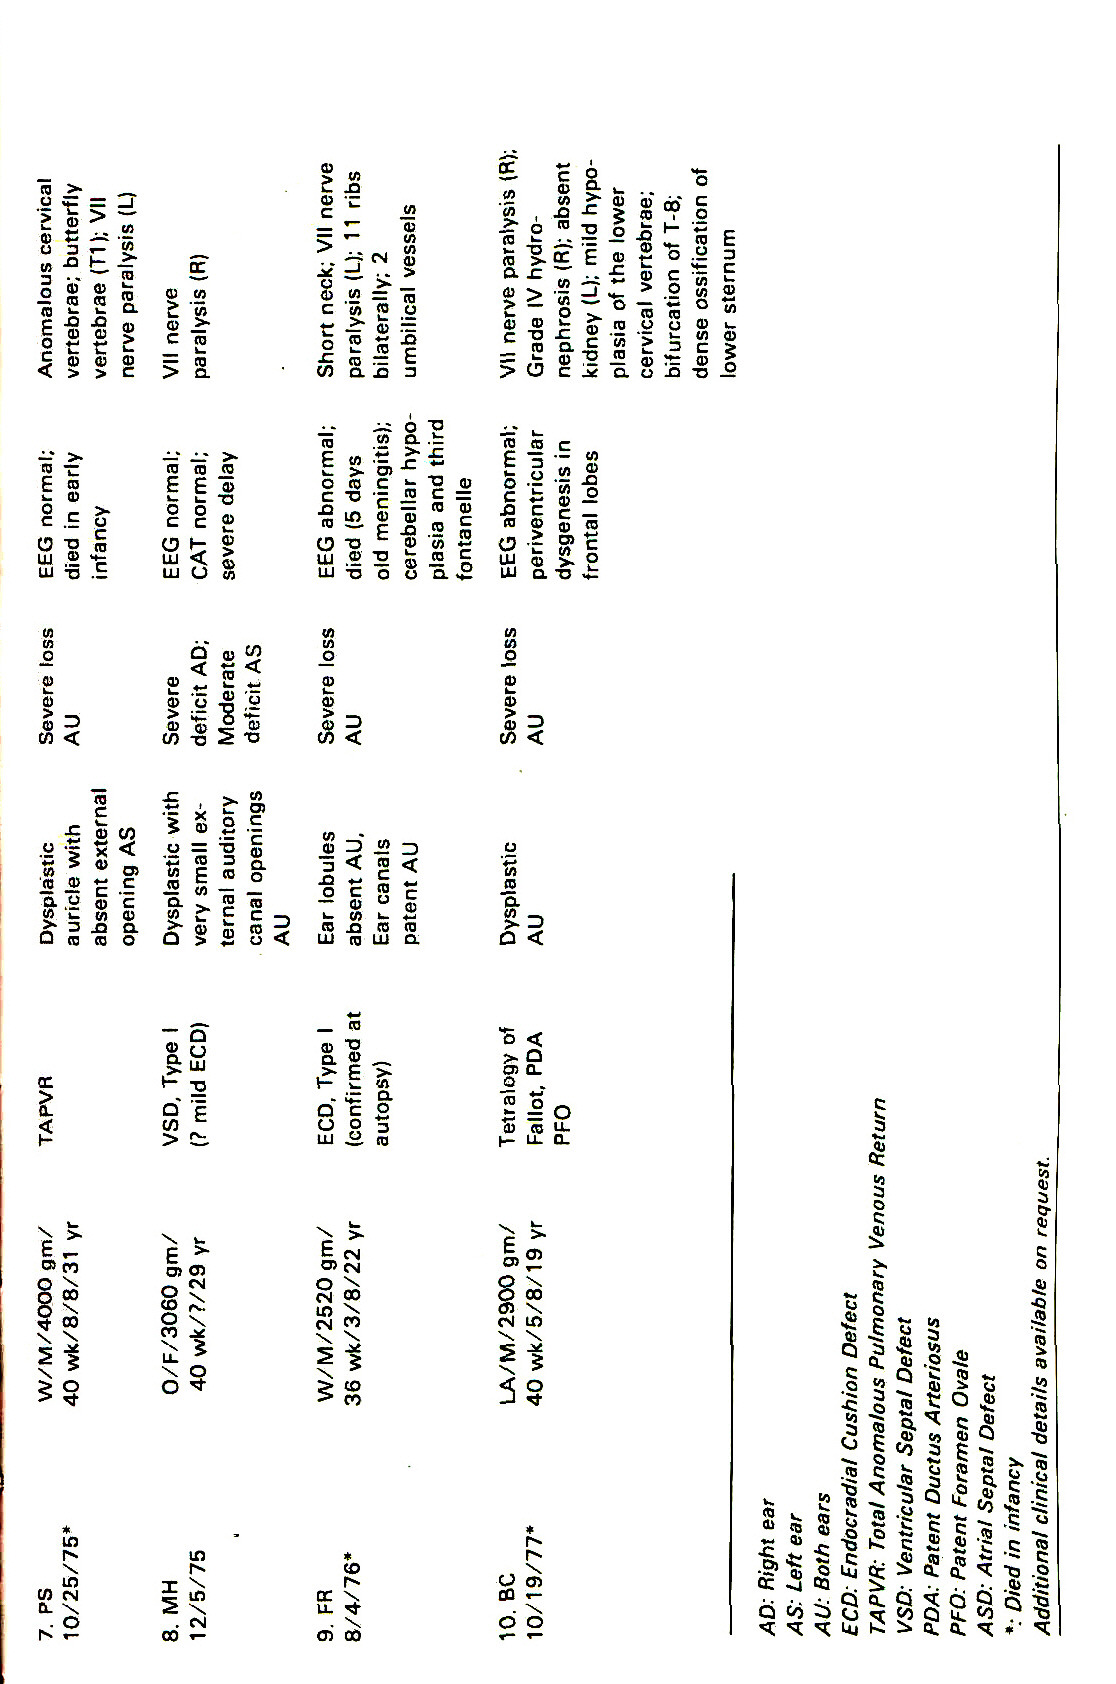 TABLE ISUMMARY OF NONOCULAR FINDINGS IN THE PATIENTS